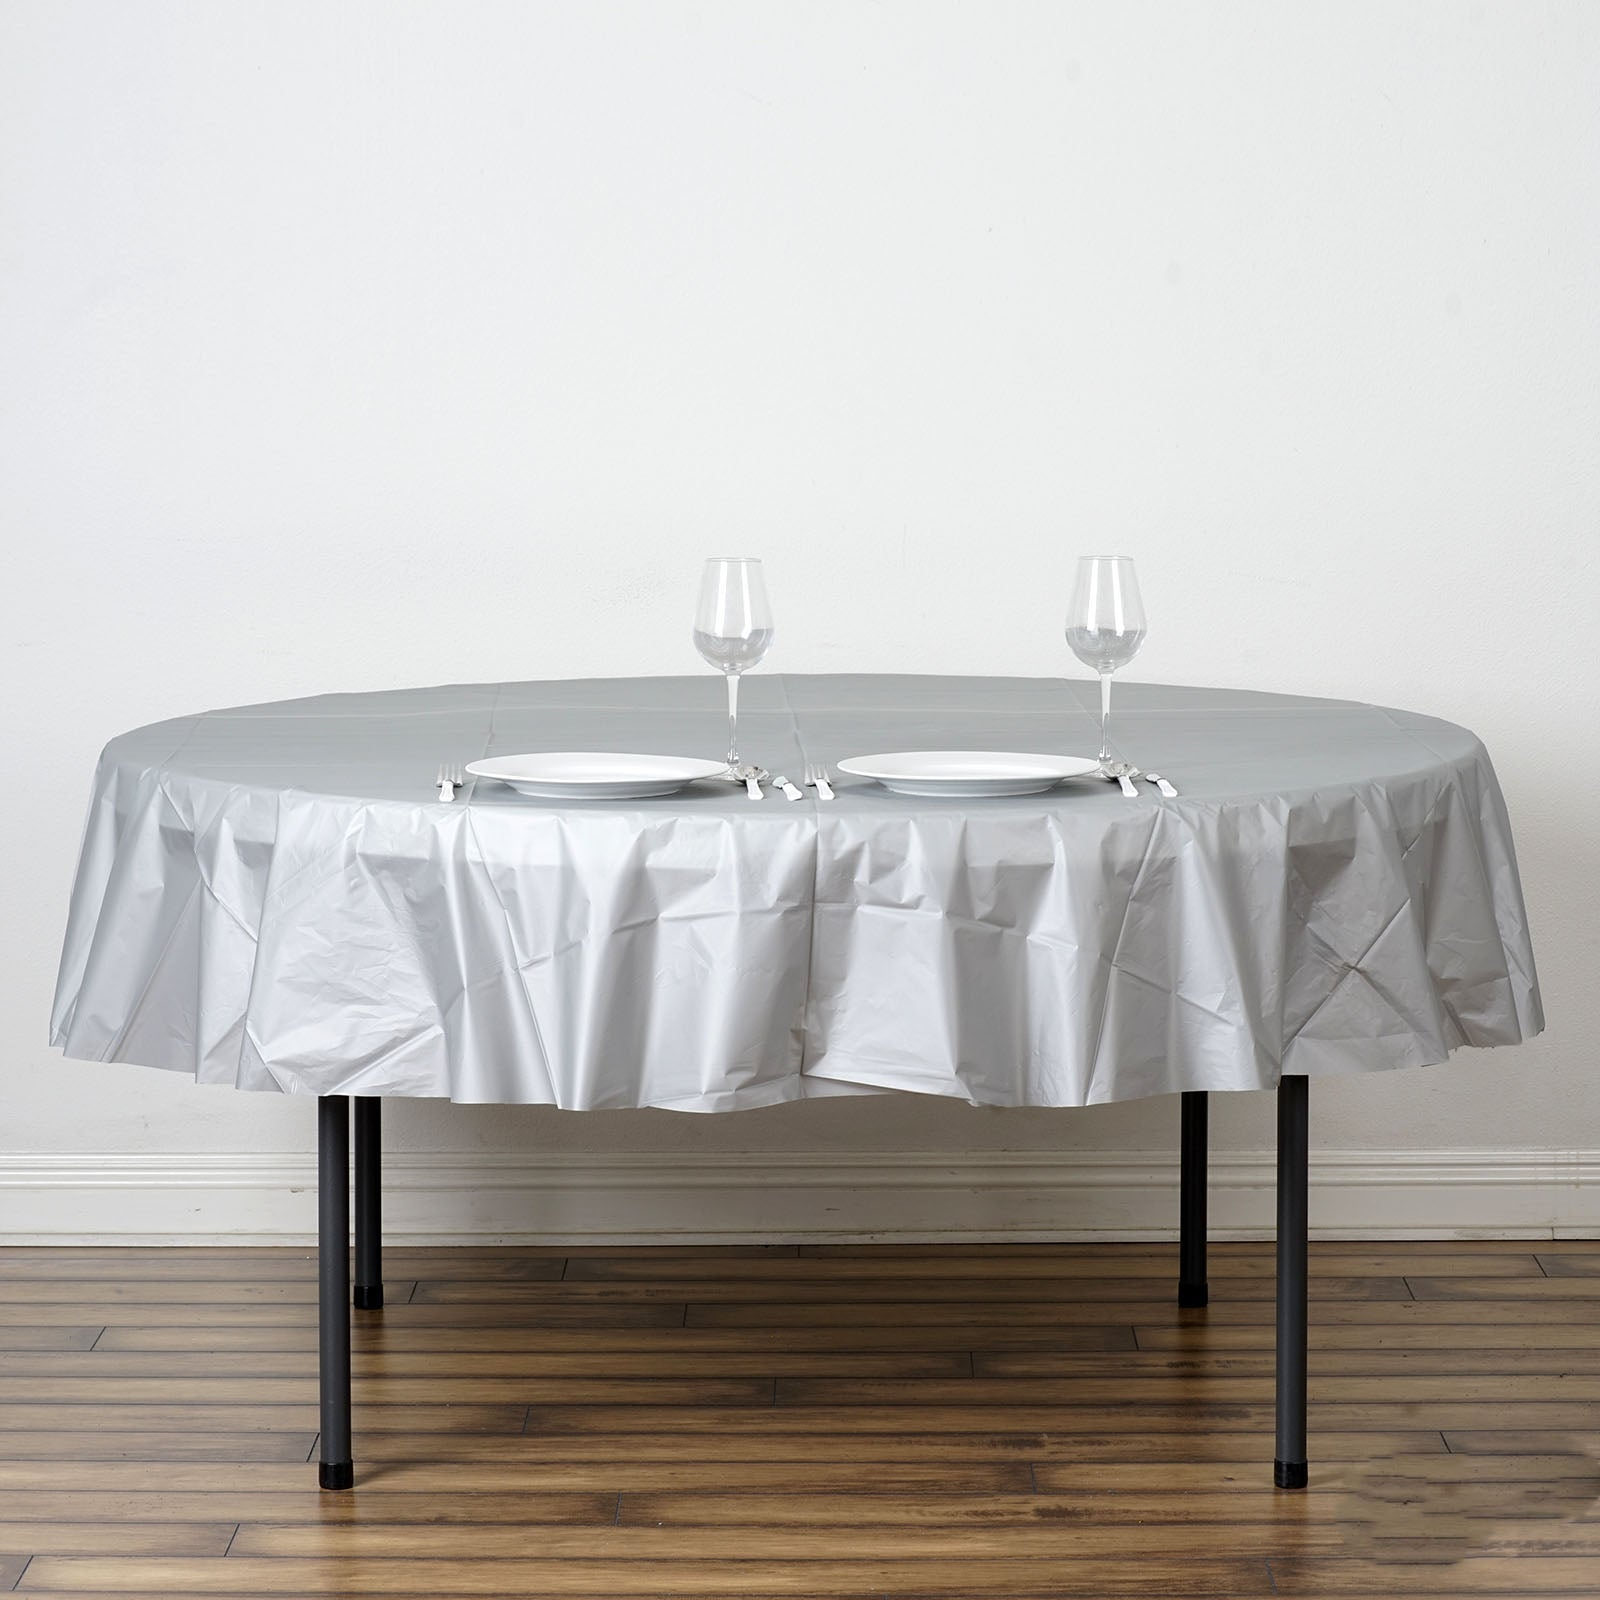 Jurmaine Health & 12-Pack Premium Plastic Tablecloth 84in White Round Table ...